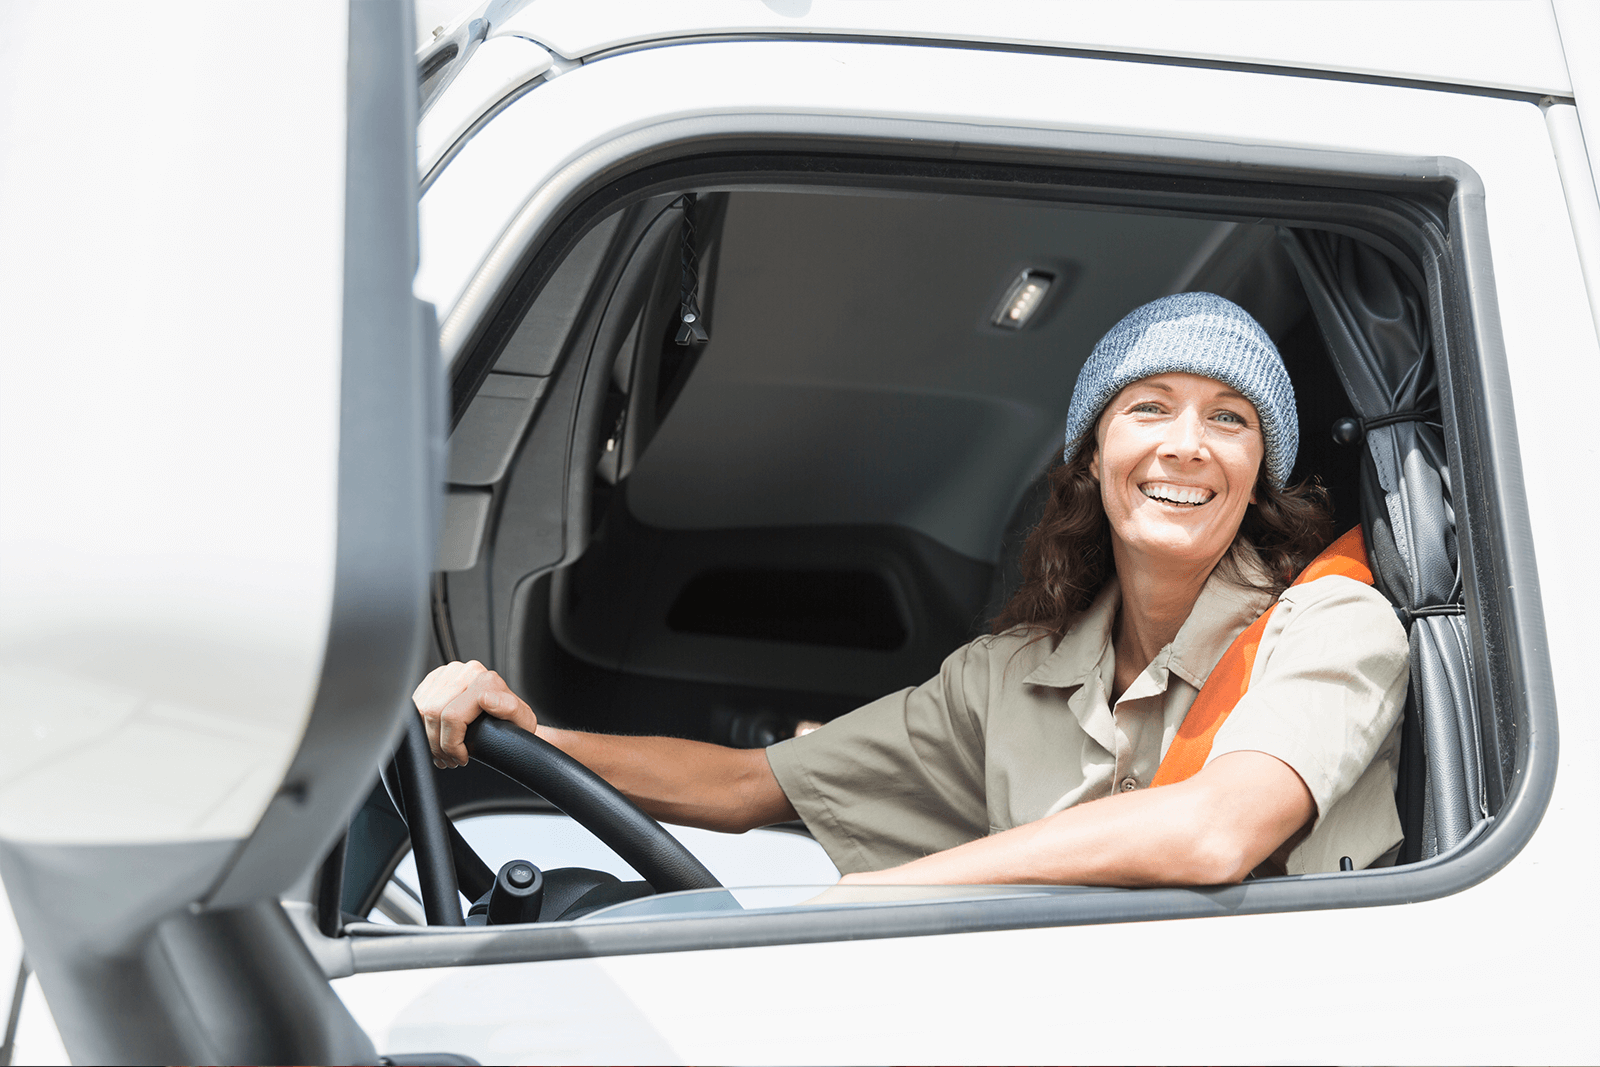 Considering a career as a commercial driver?